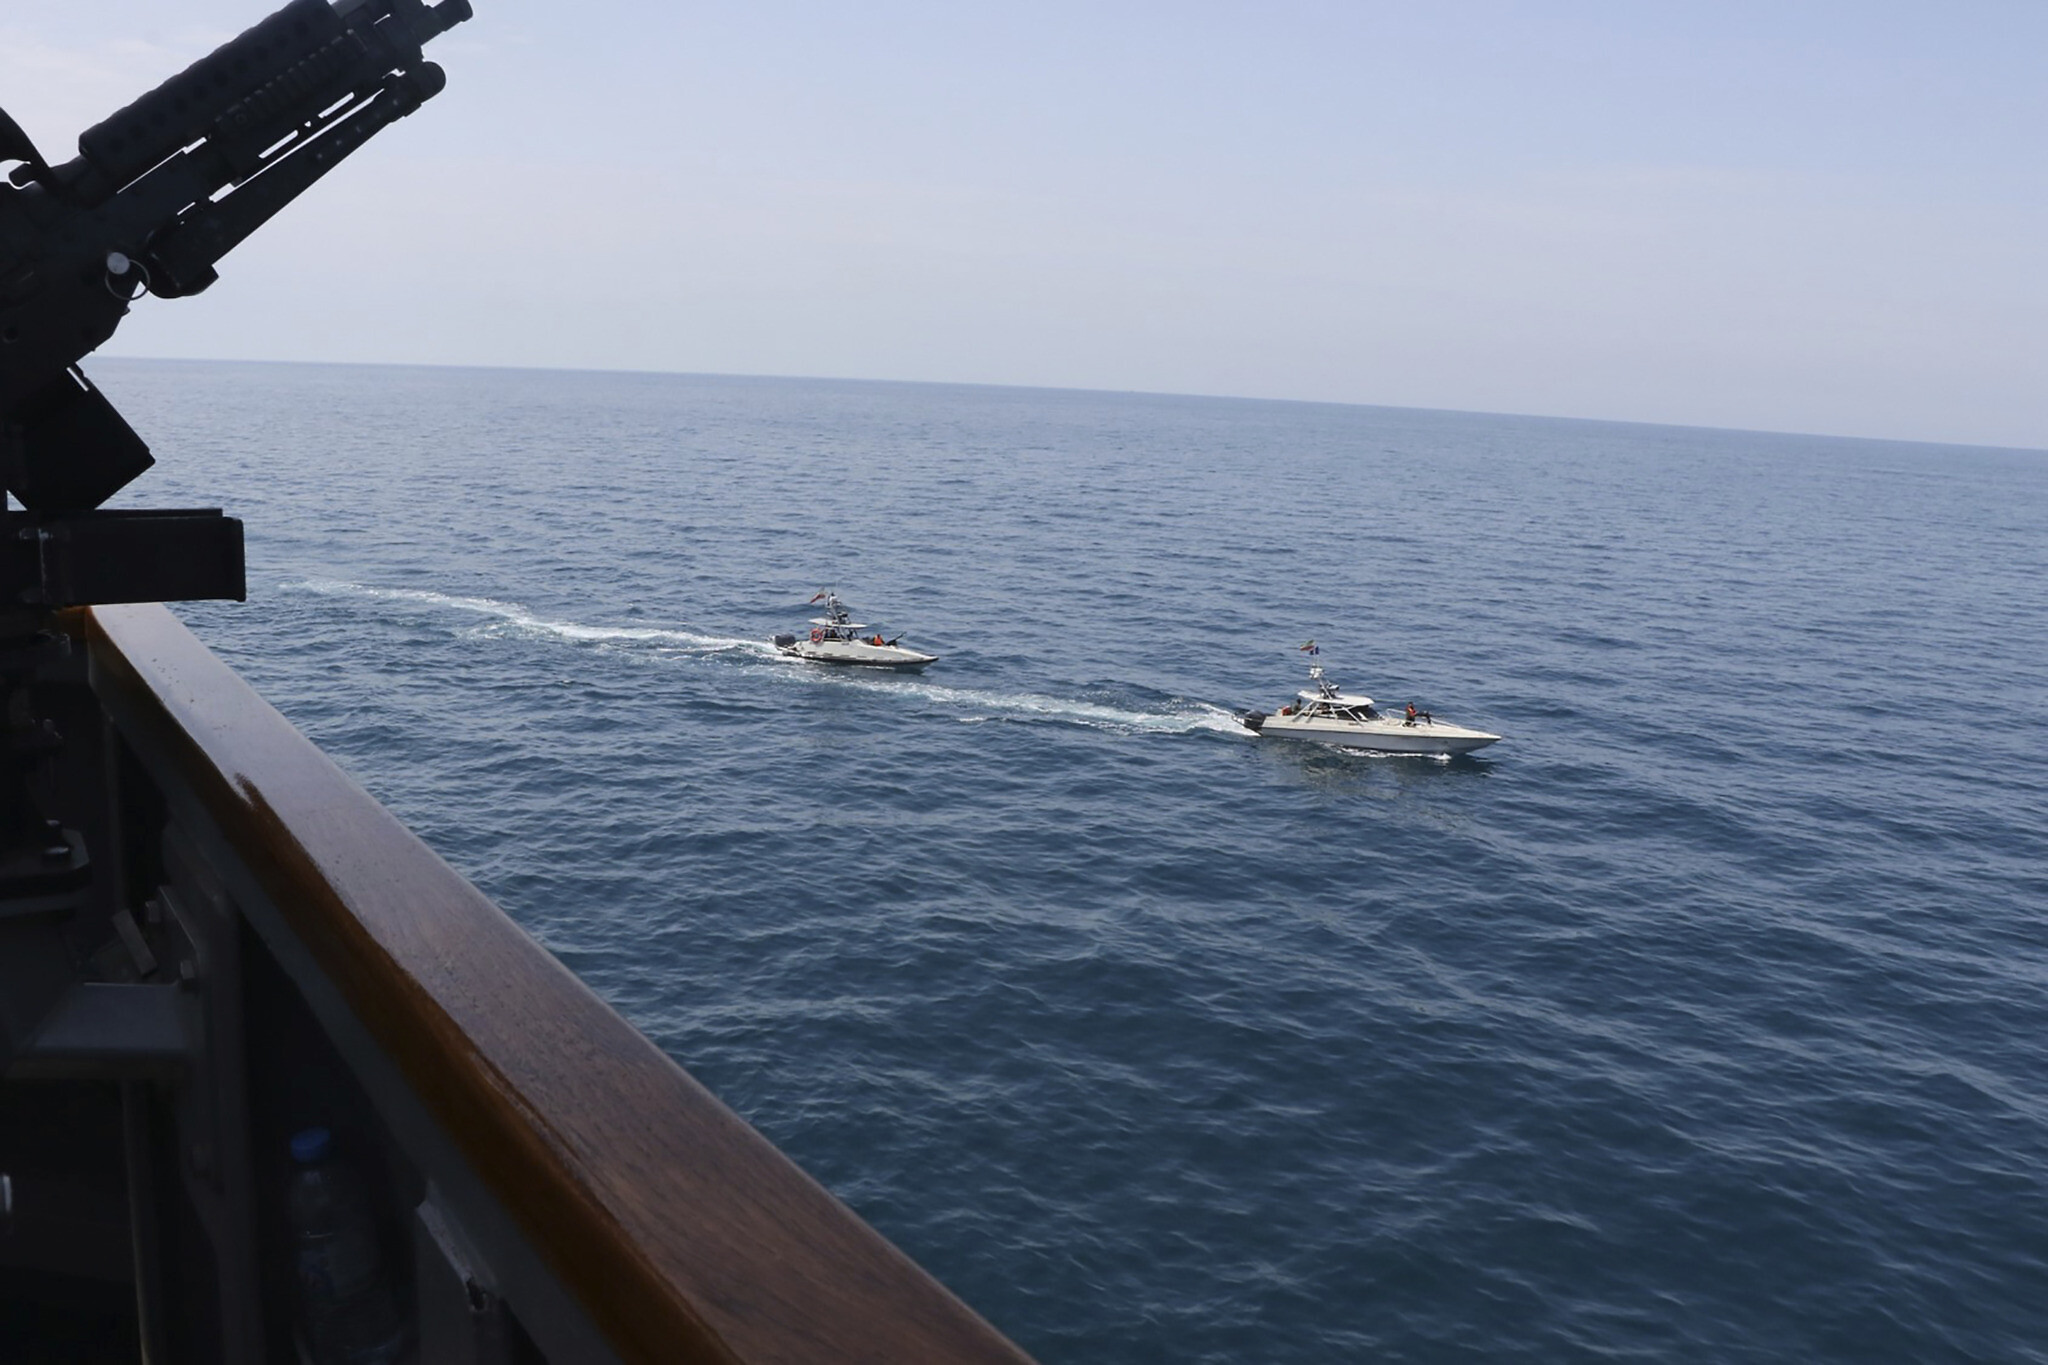 Iran says USA ships started provocation